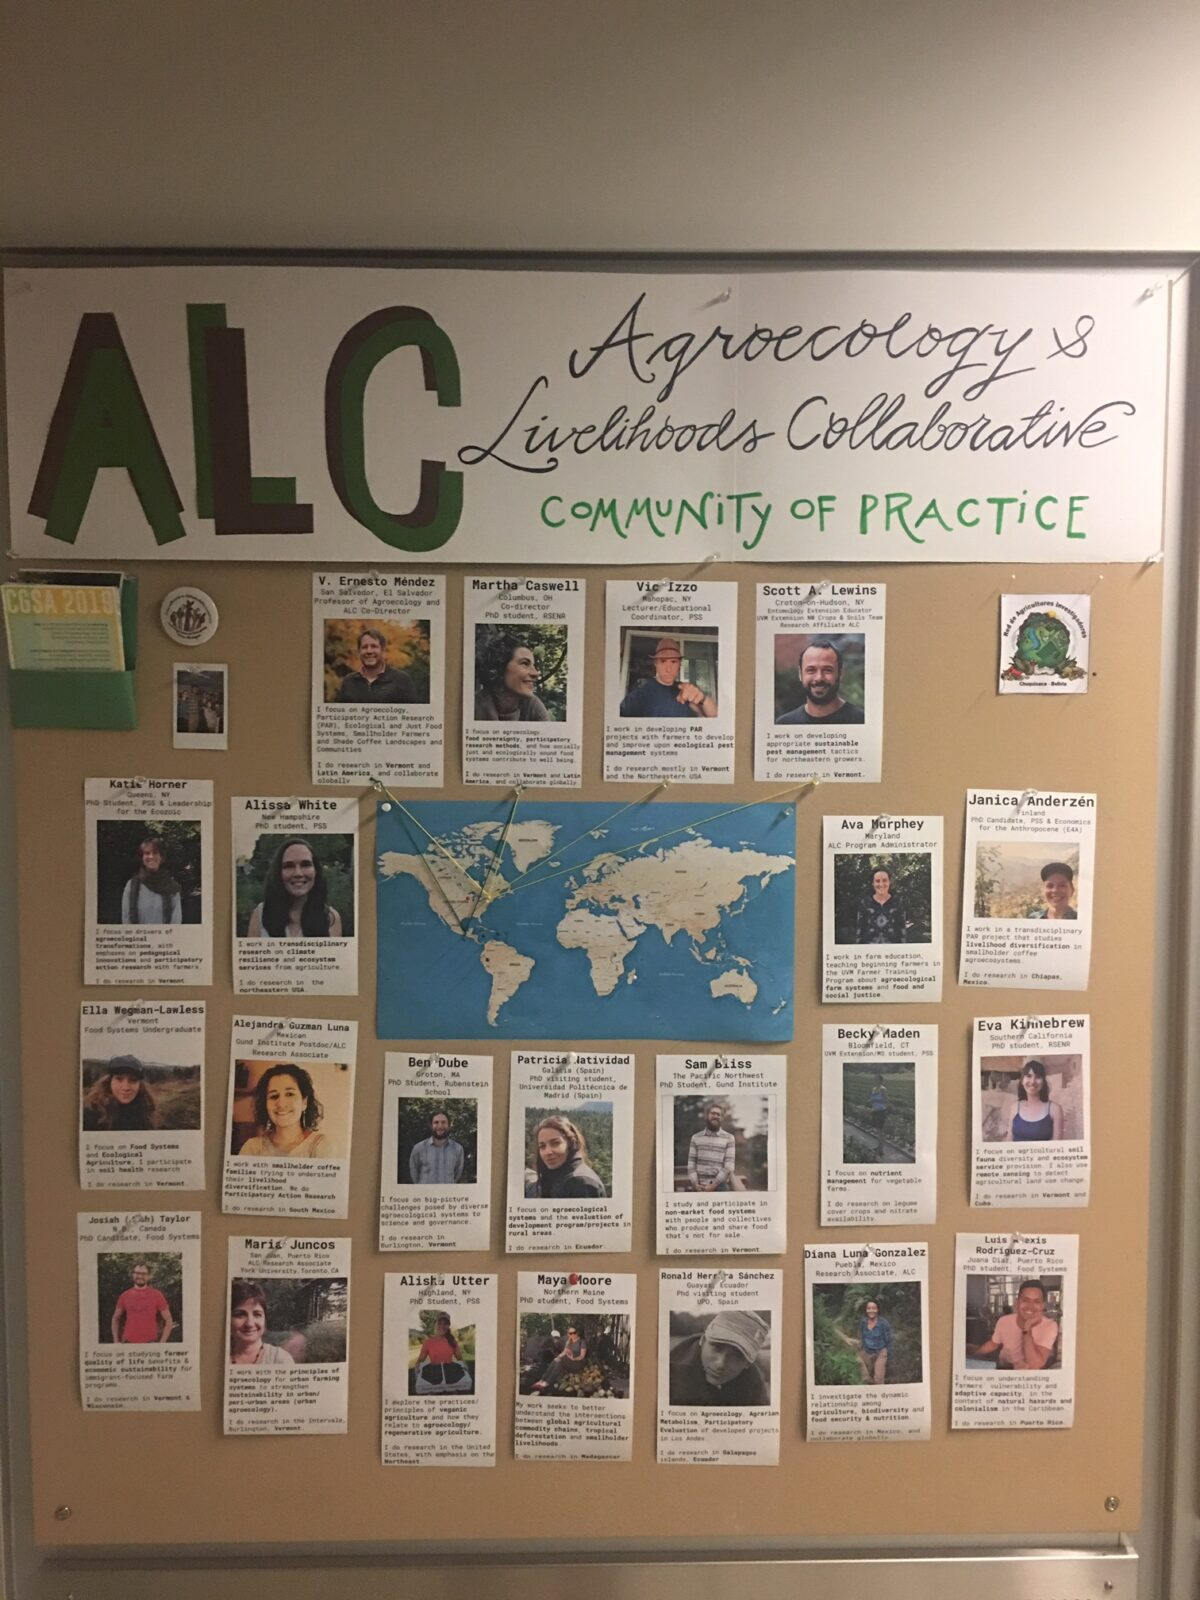 ALC visualizes and displays its community of practice